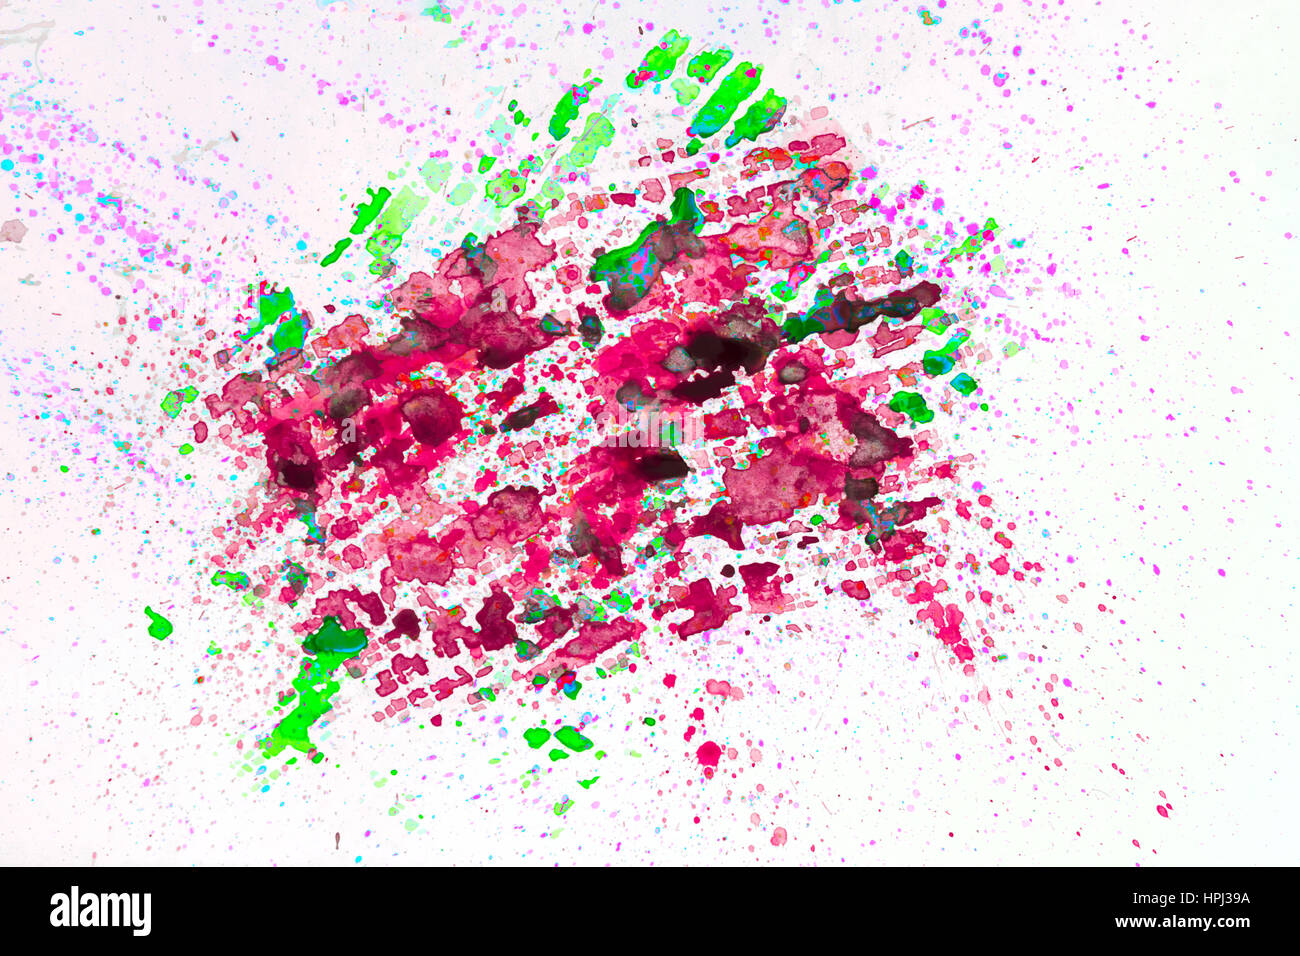 Watercolor abstract background painting, hand drawn on paper grain texture. For modern pattern, wallpaper, banner - Stock Image